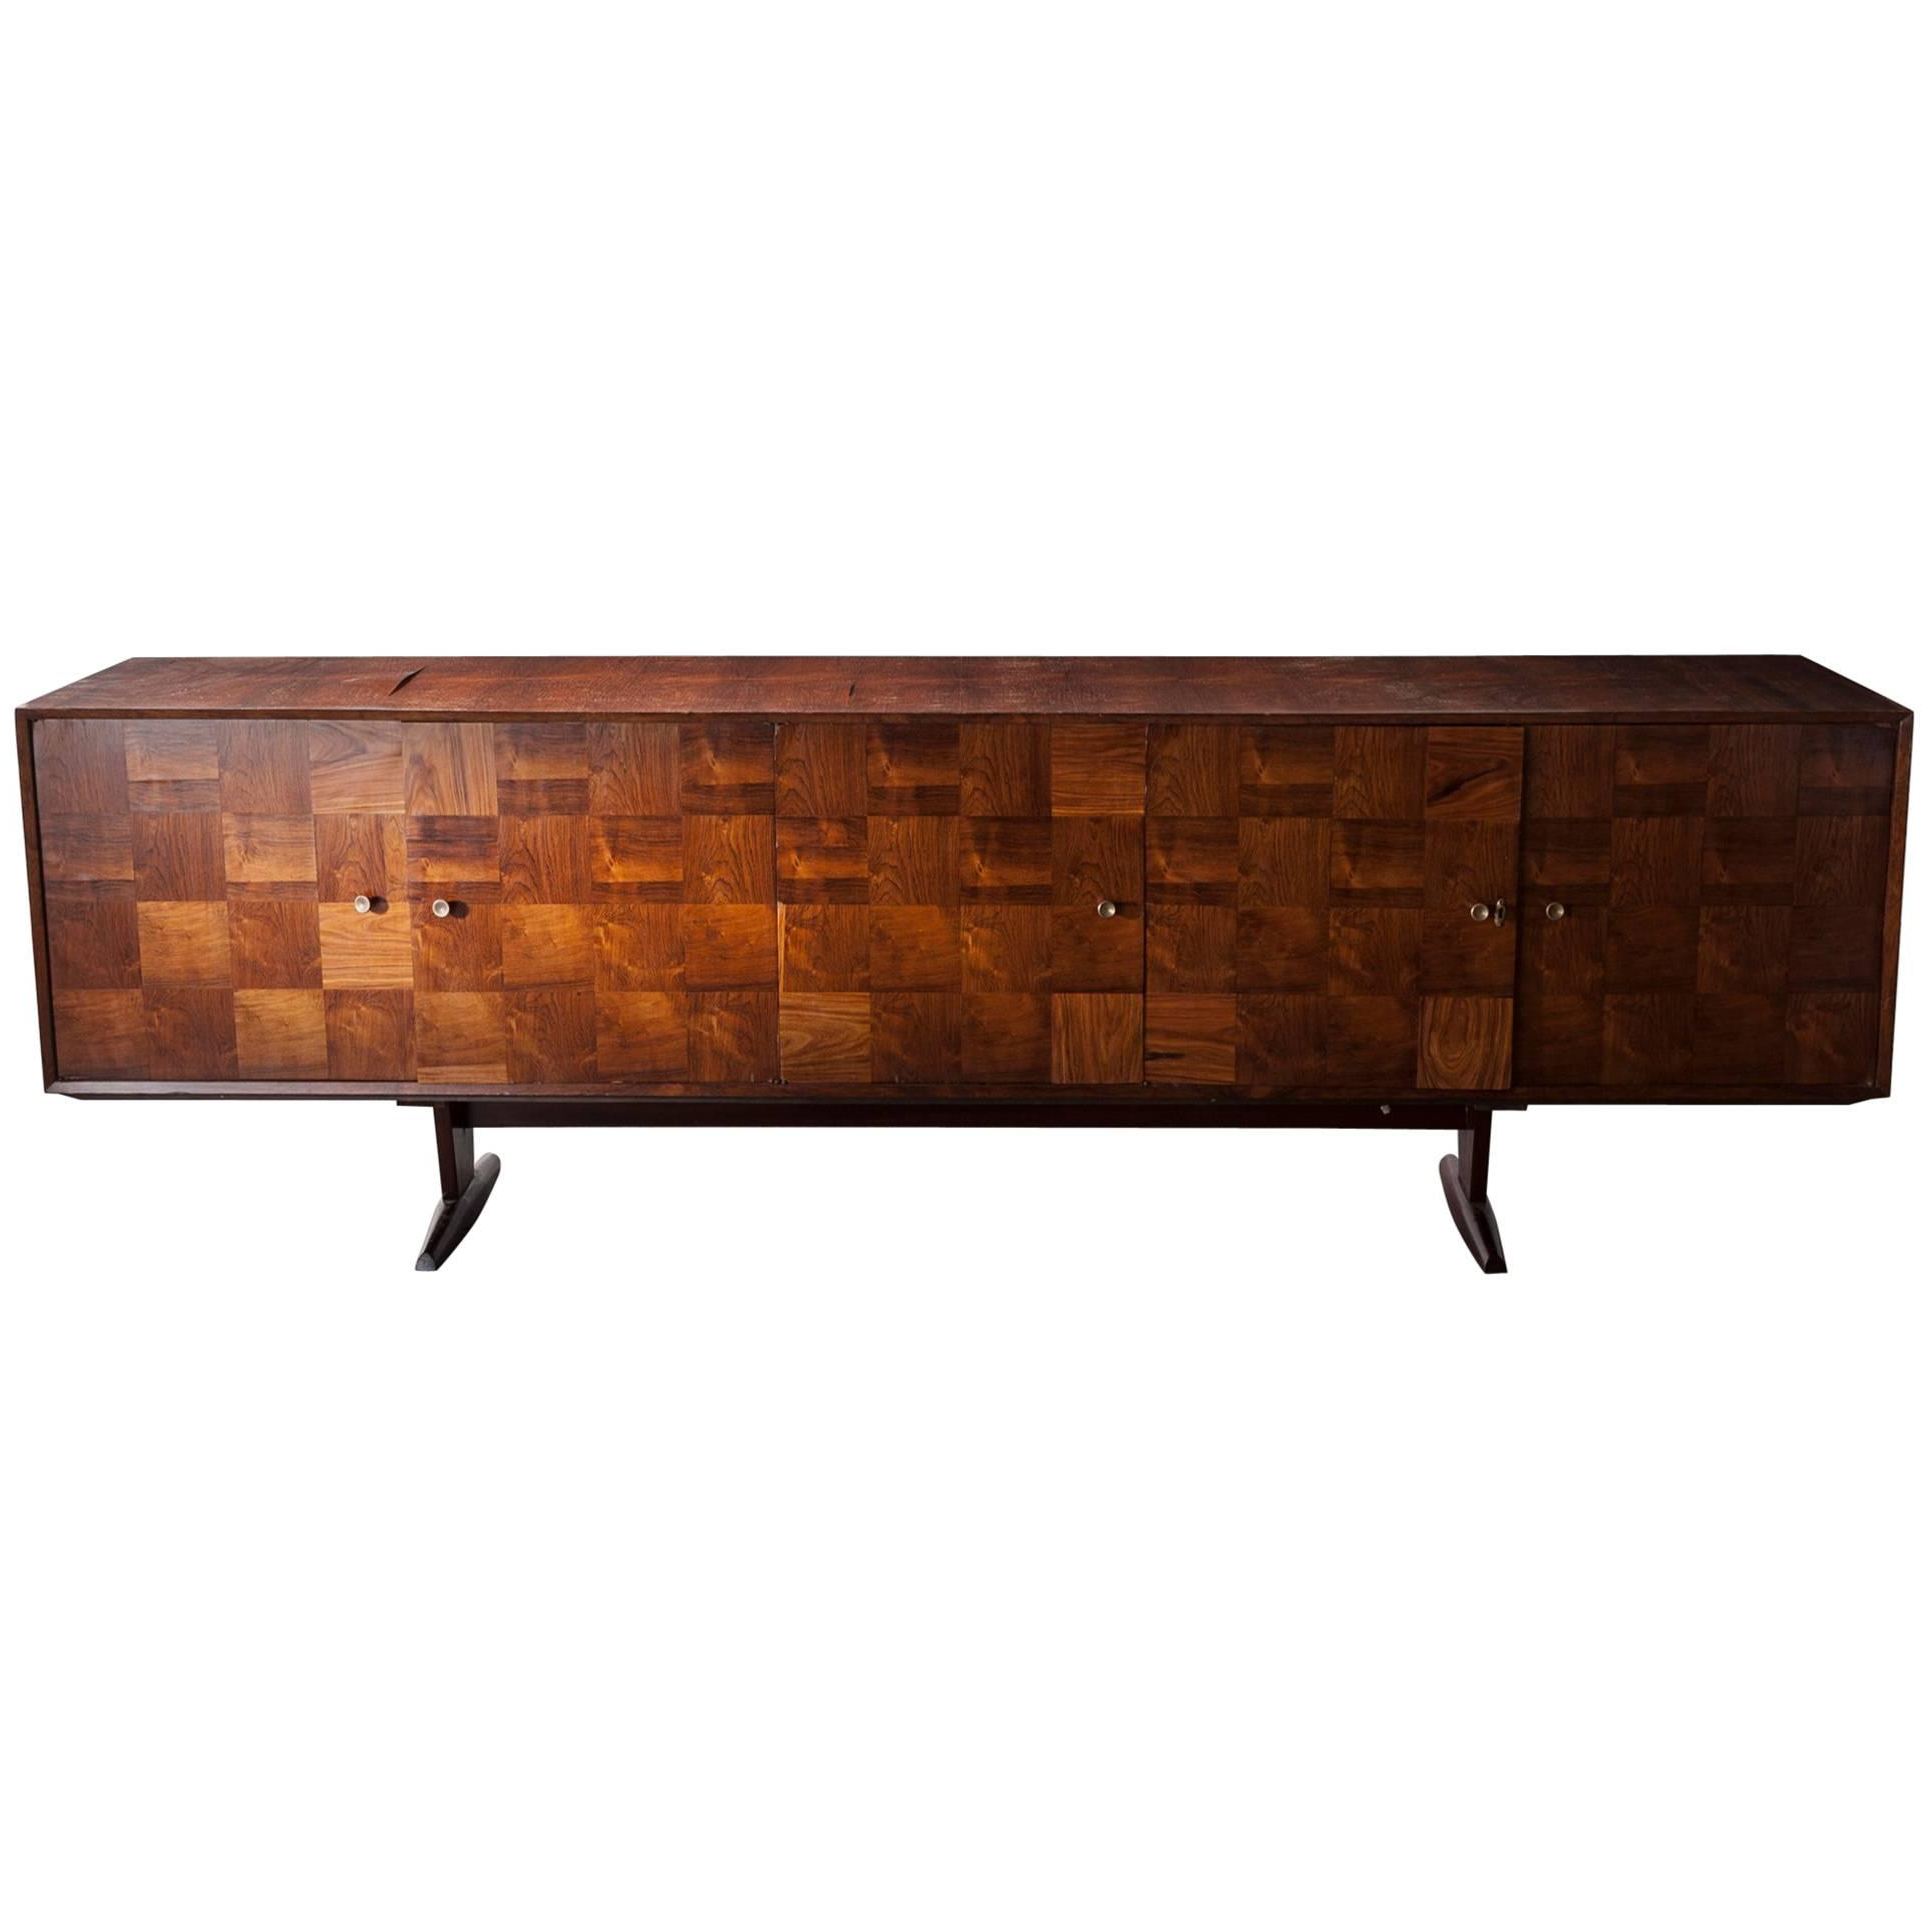 Giuseppe Scapinelli Case Pieces And Storage Cabinets – 11 Within Dormer Sideboards (View 20 of 20)